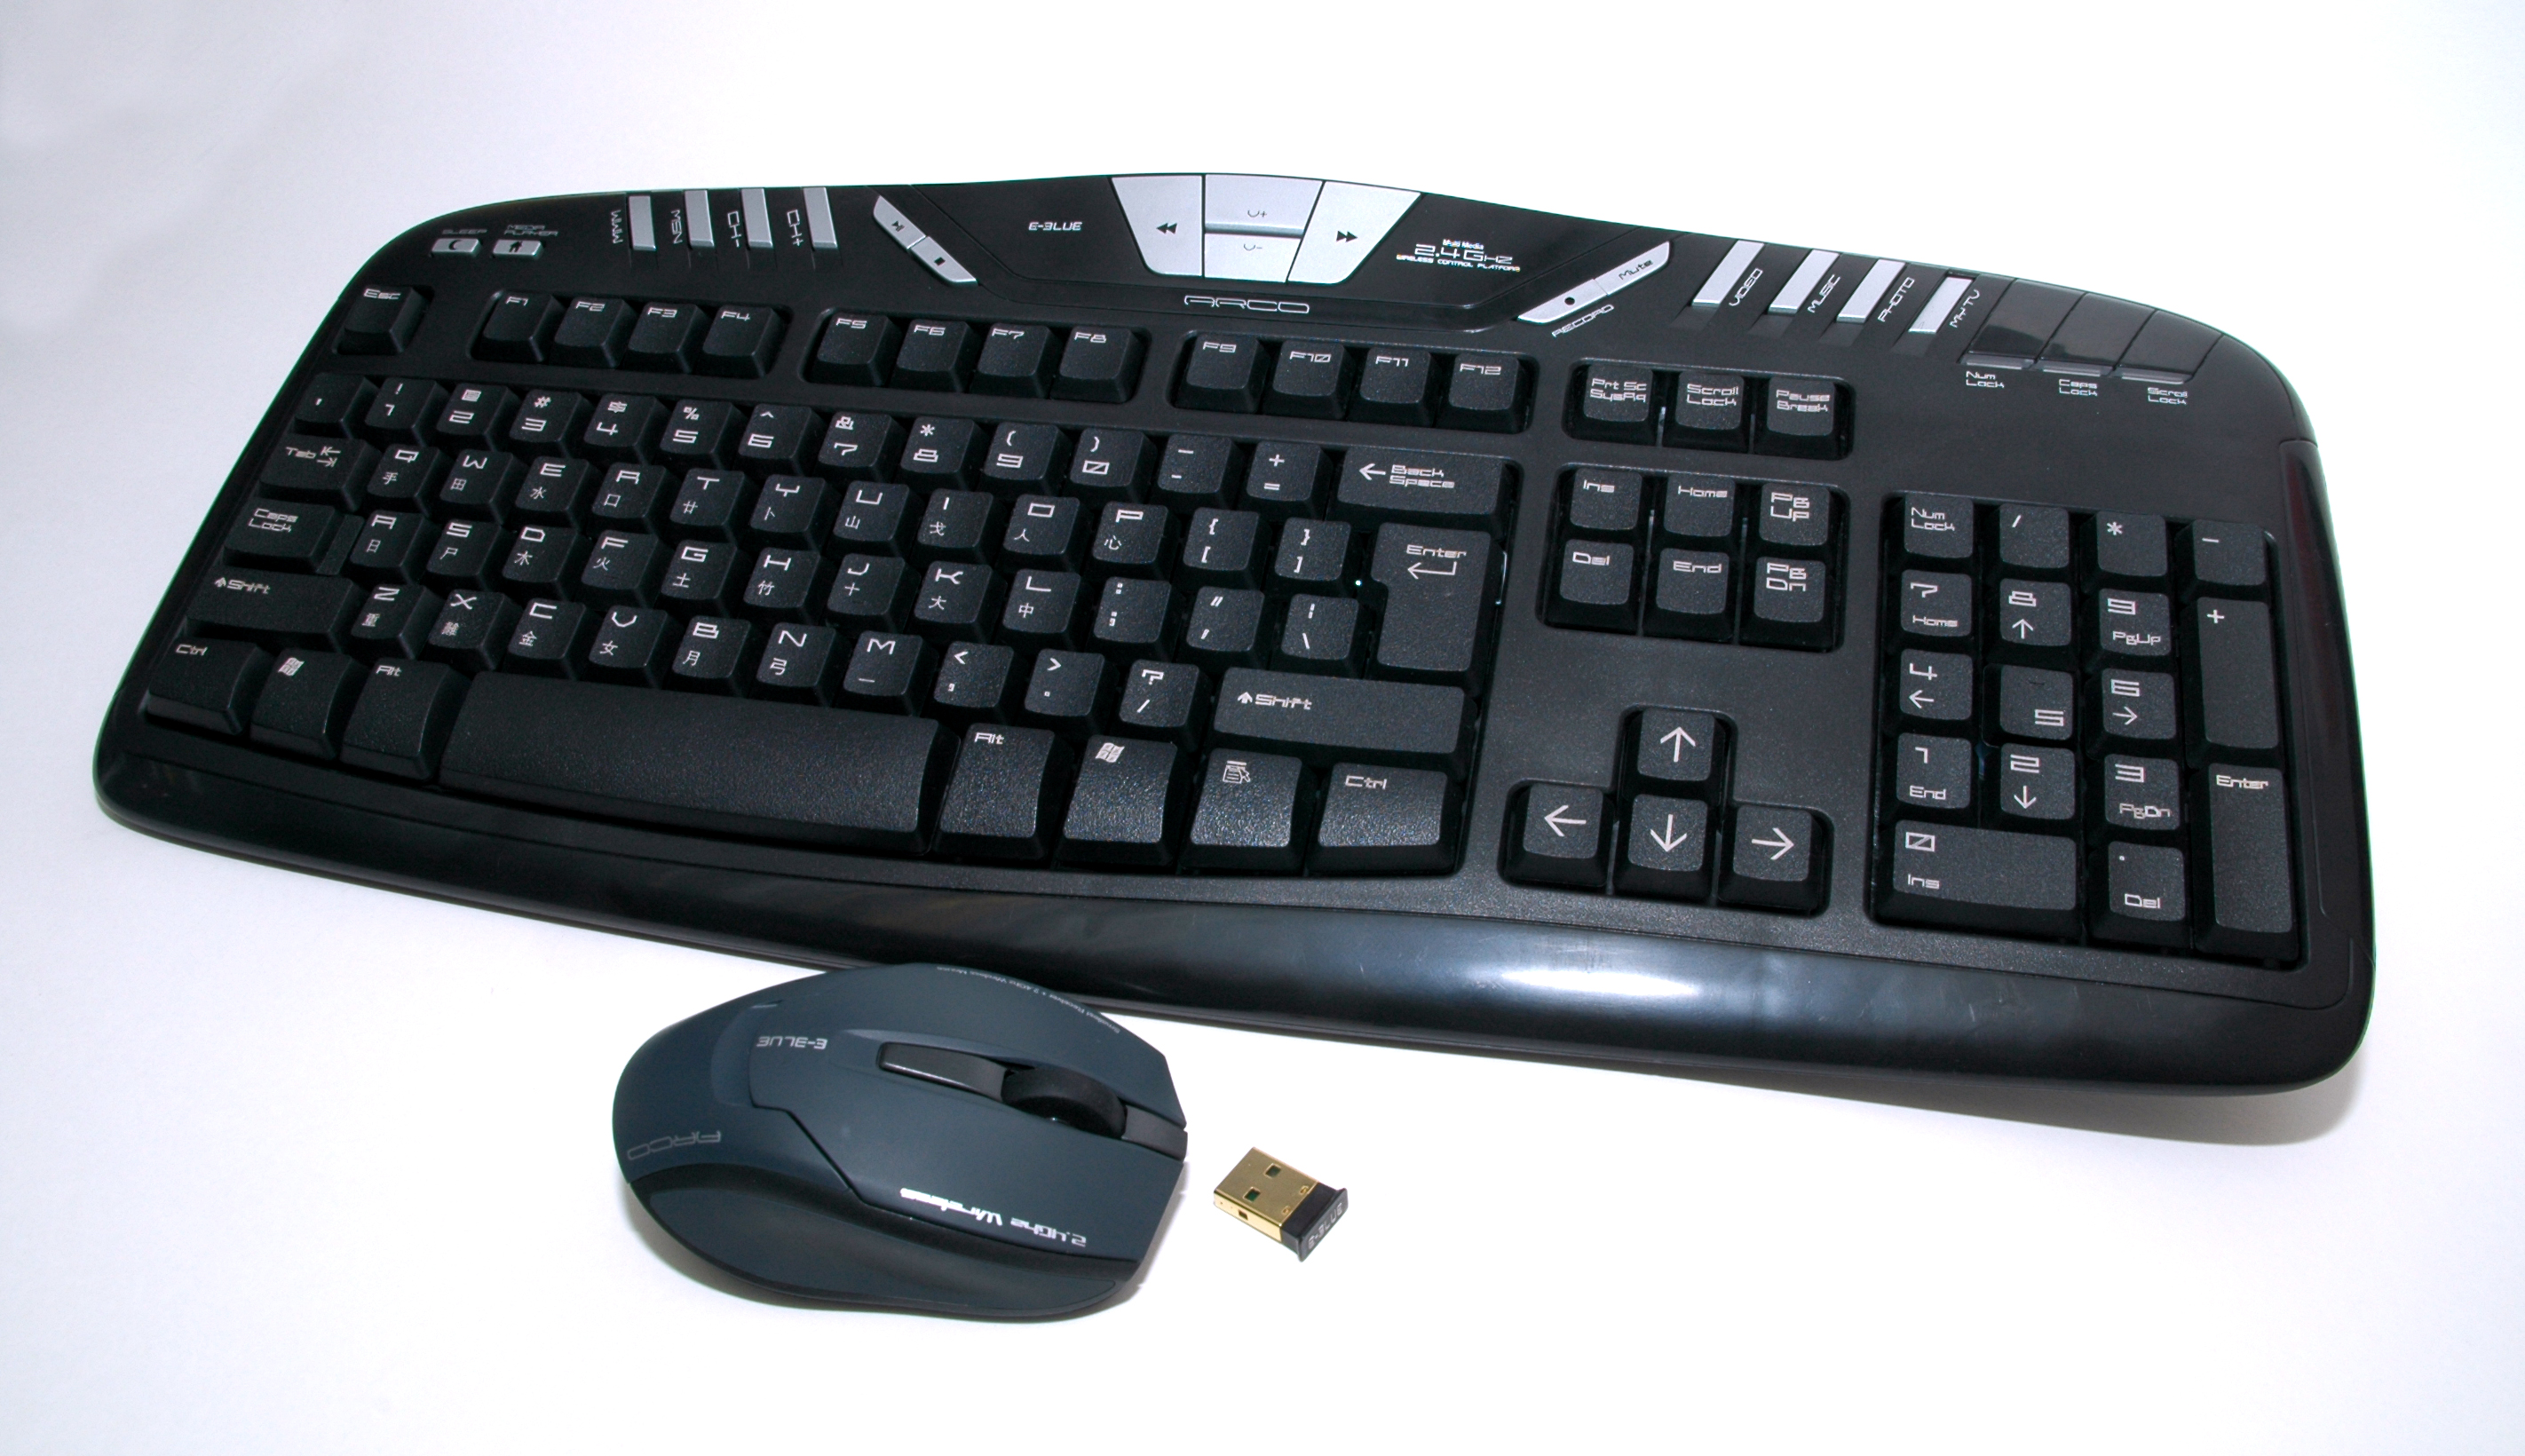 Arco+ Laser 2.4G Wireless Keyboard + Laser Mouse Combo